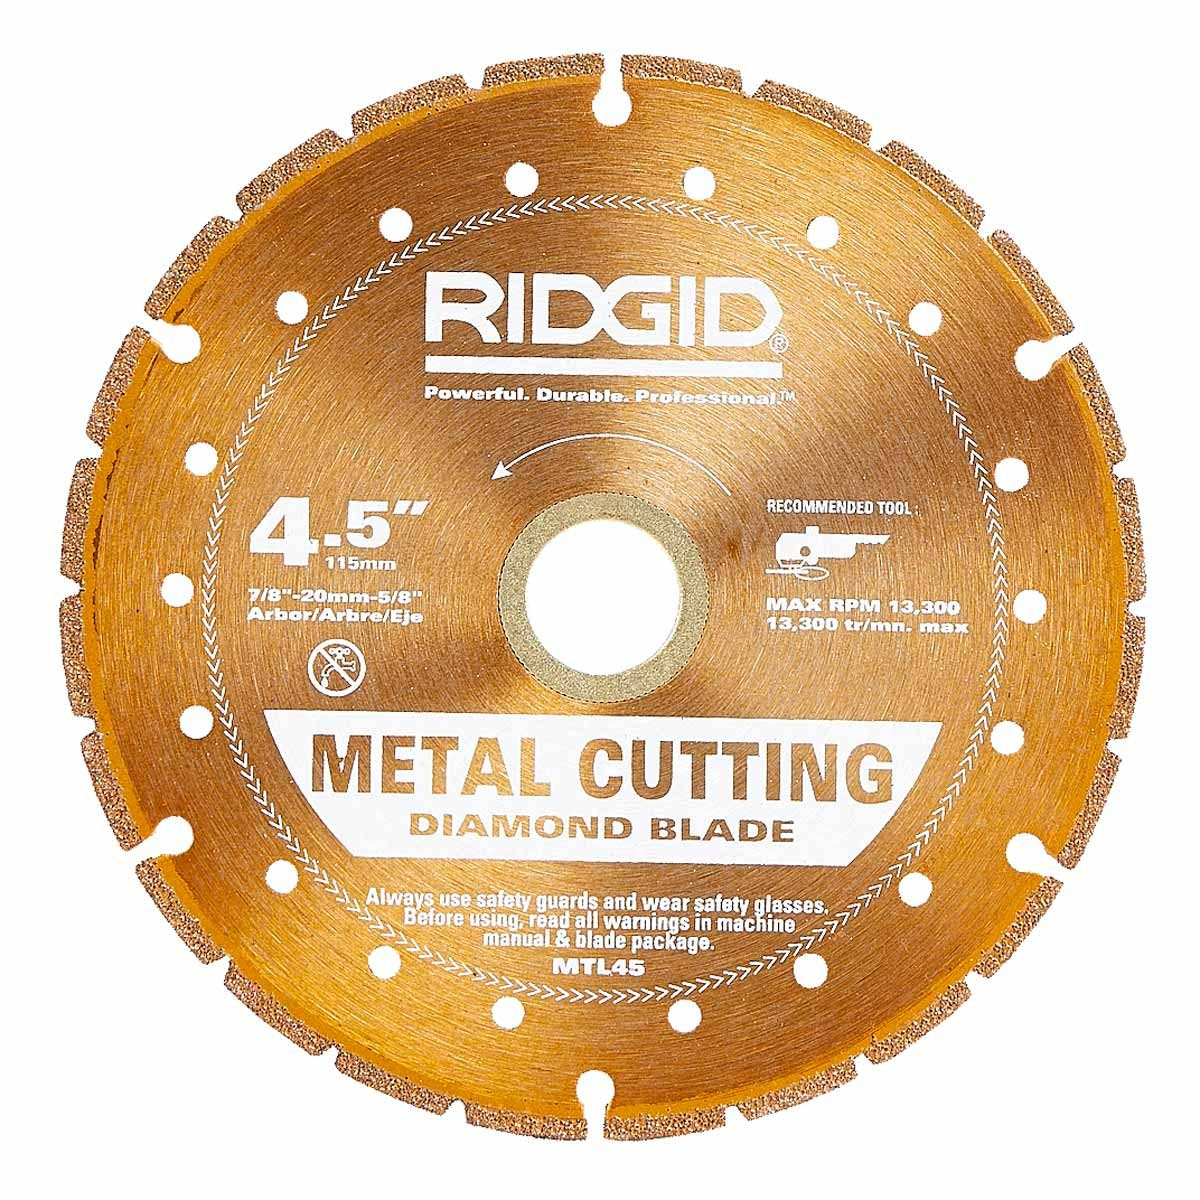 10 easy ways to cut metal fast the family handyman ditch the abrasive grinder discs greentooth Images